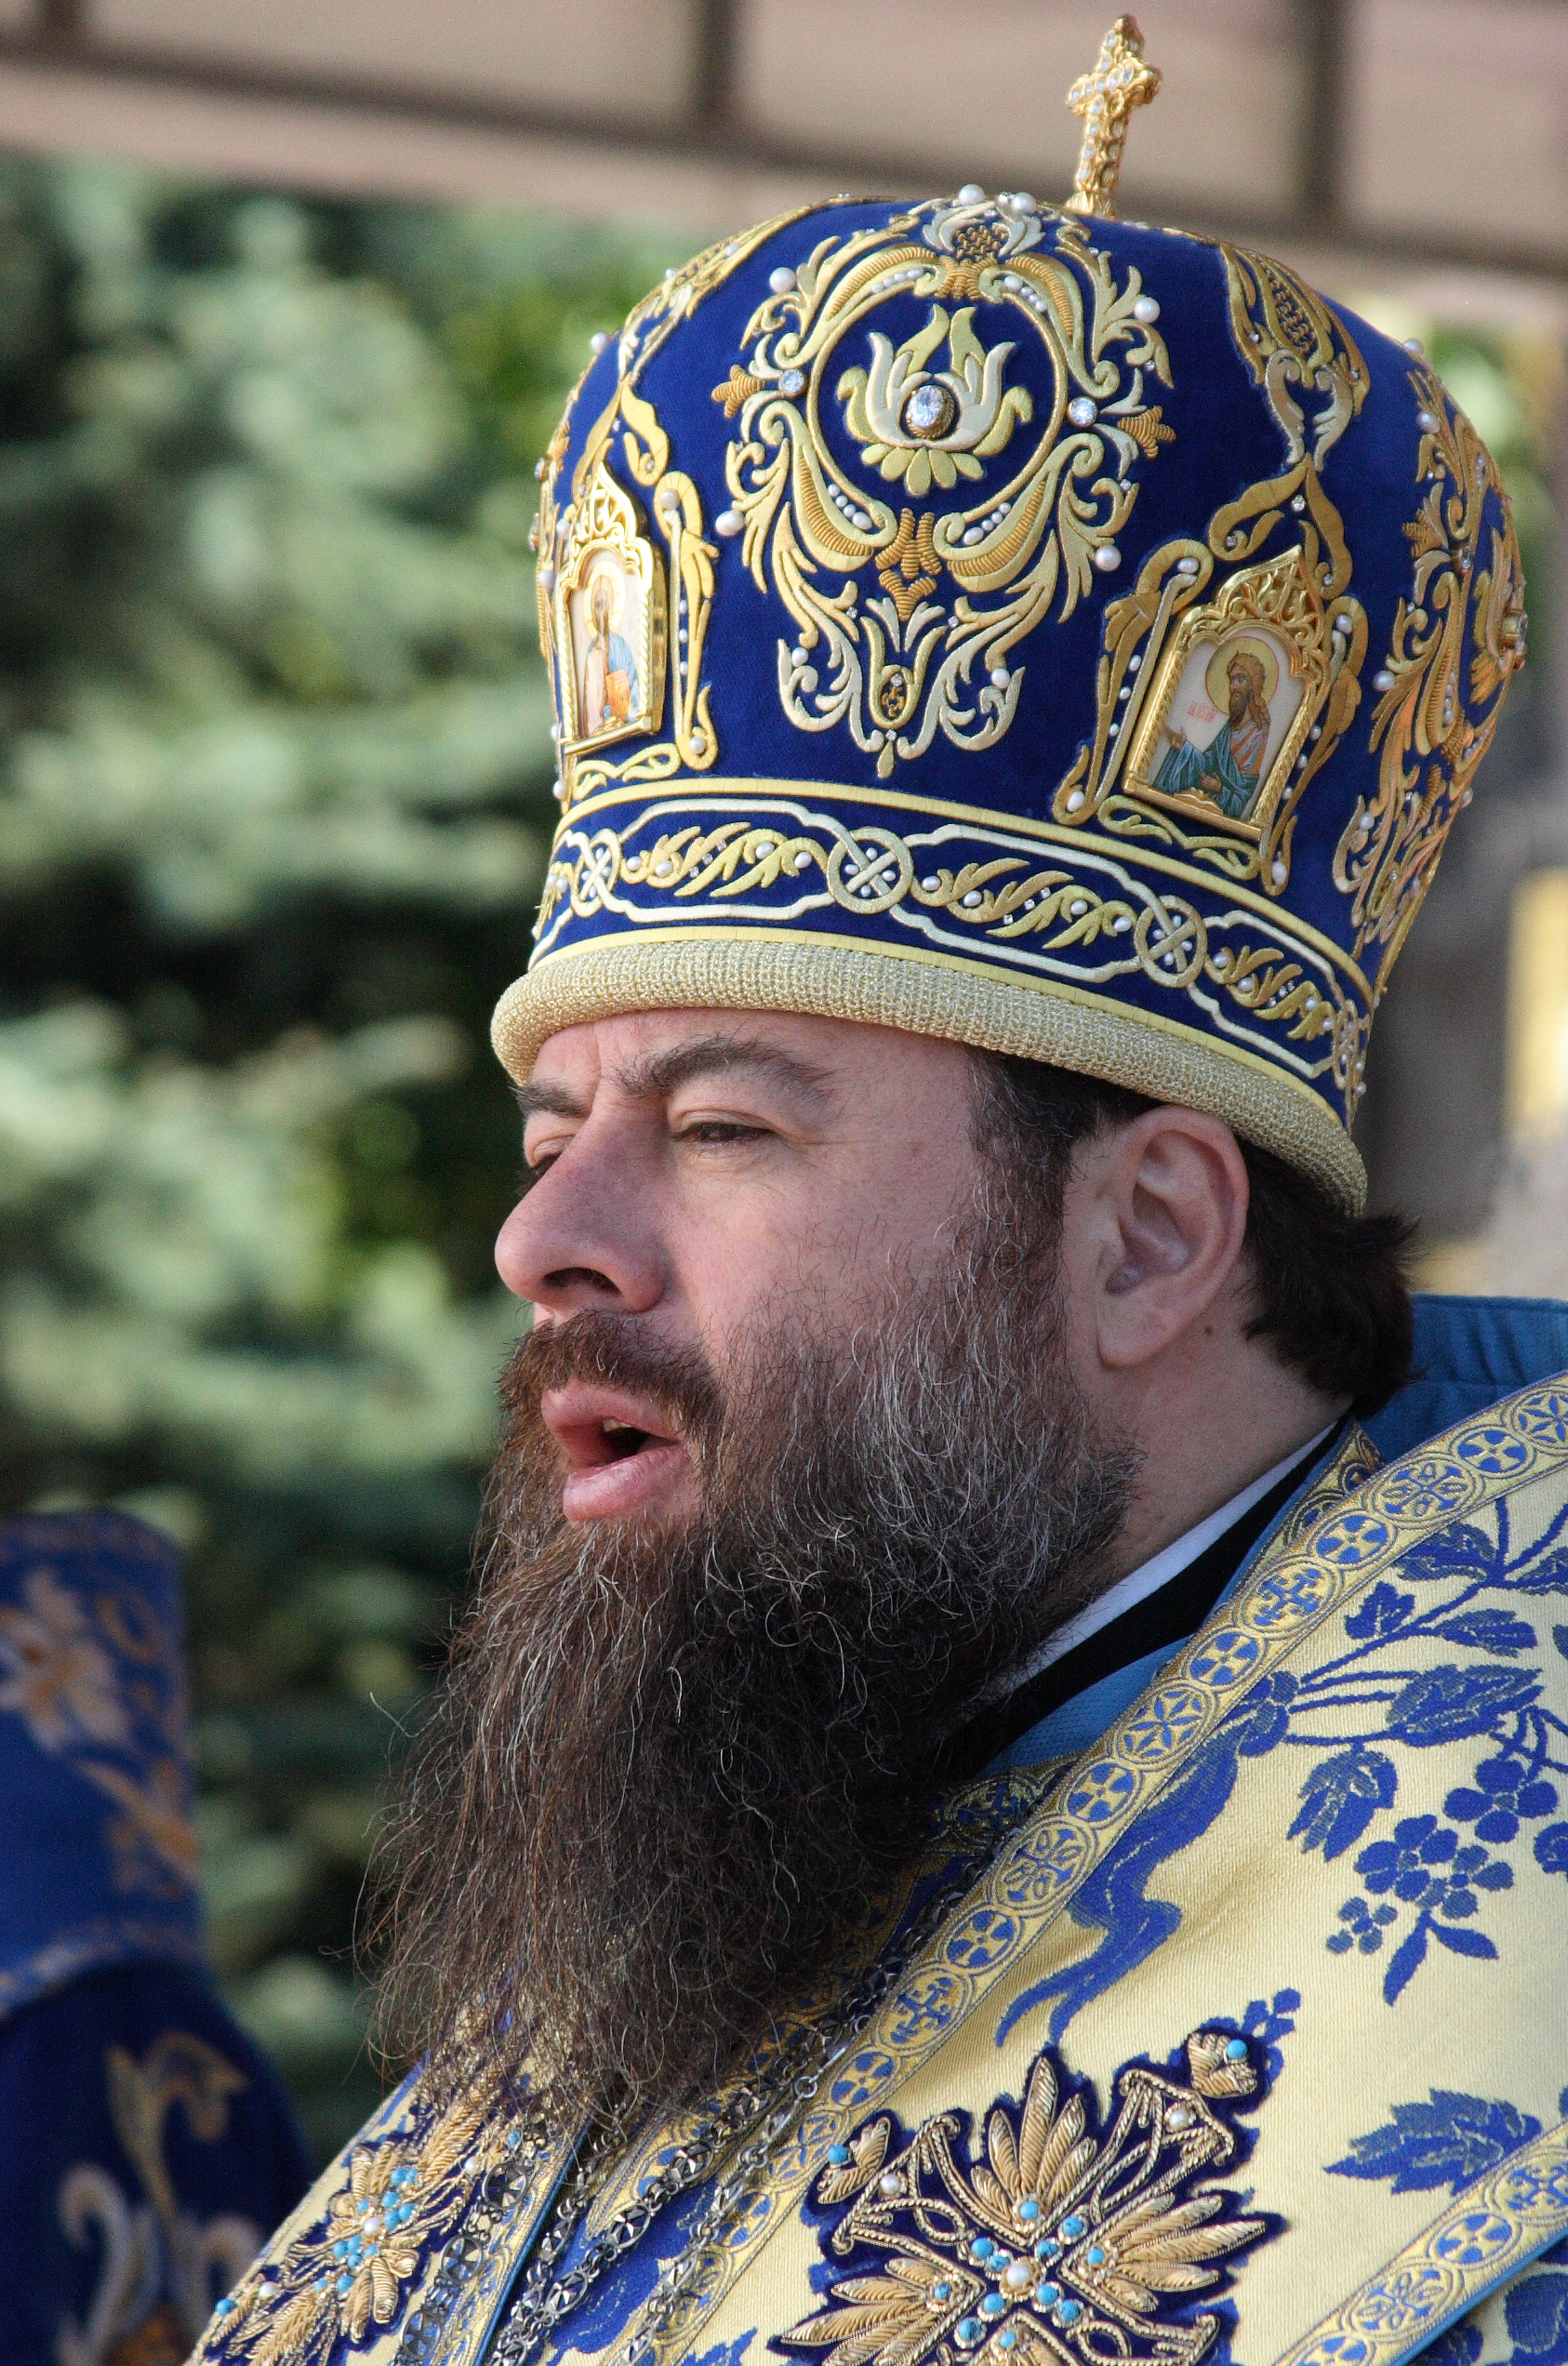 Bishop Mitrofan